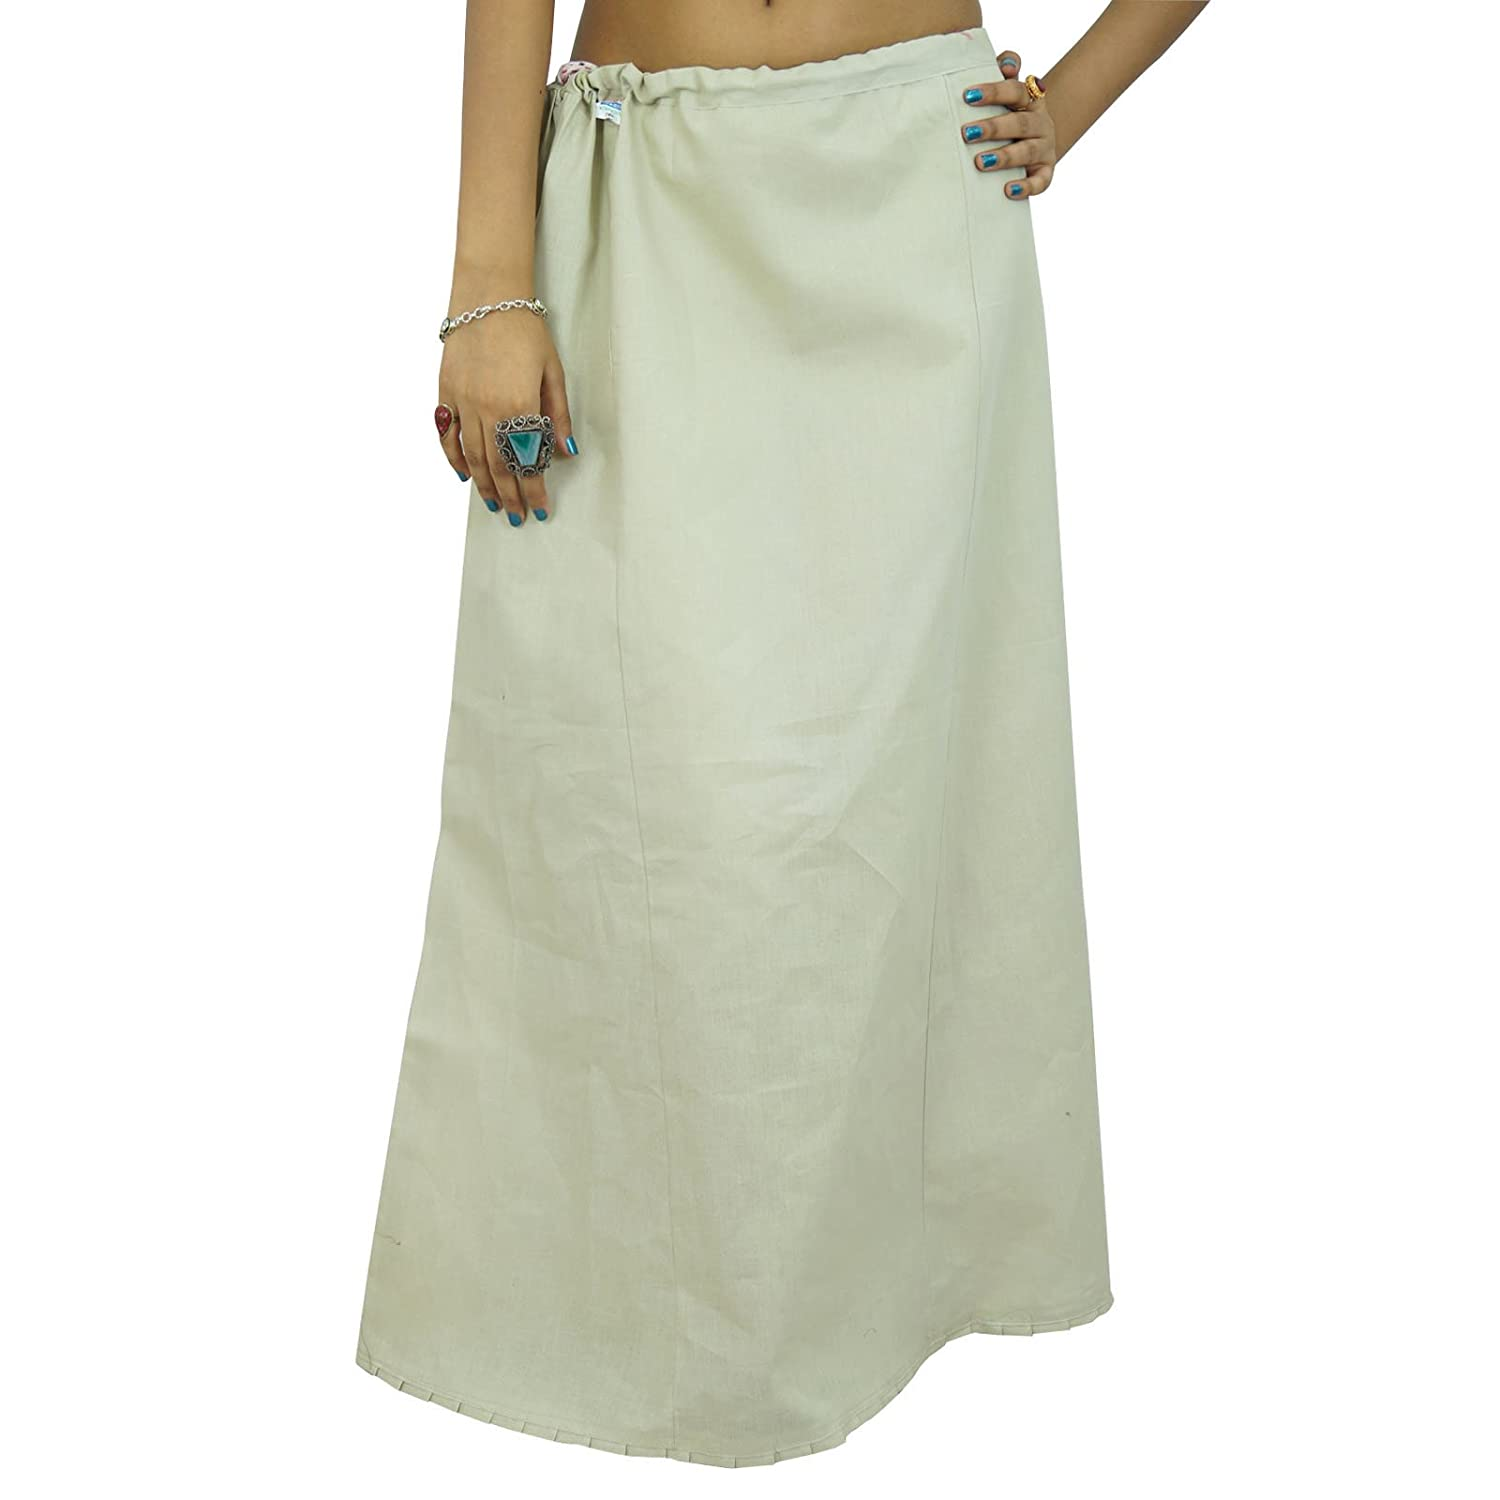 Solide Petticoatunderskirt Bollywood Indian Women Clothing Baumwollfutter Für Sari kaufen